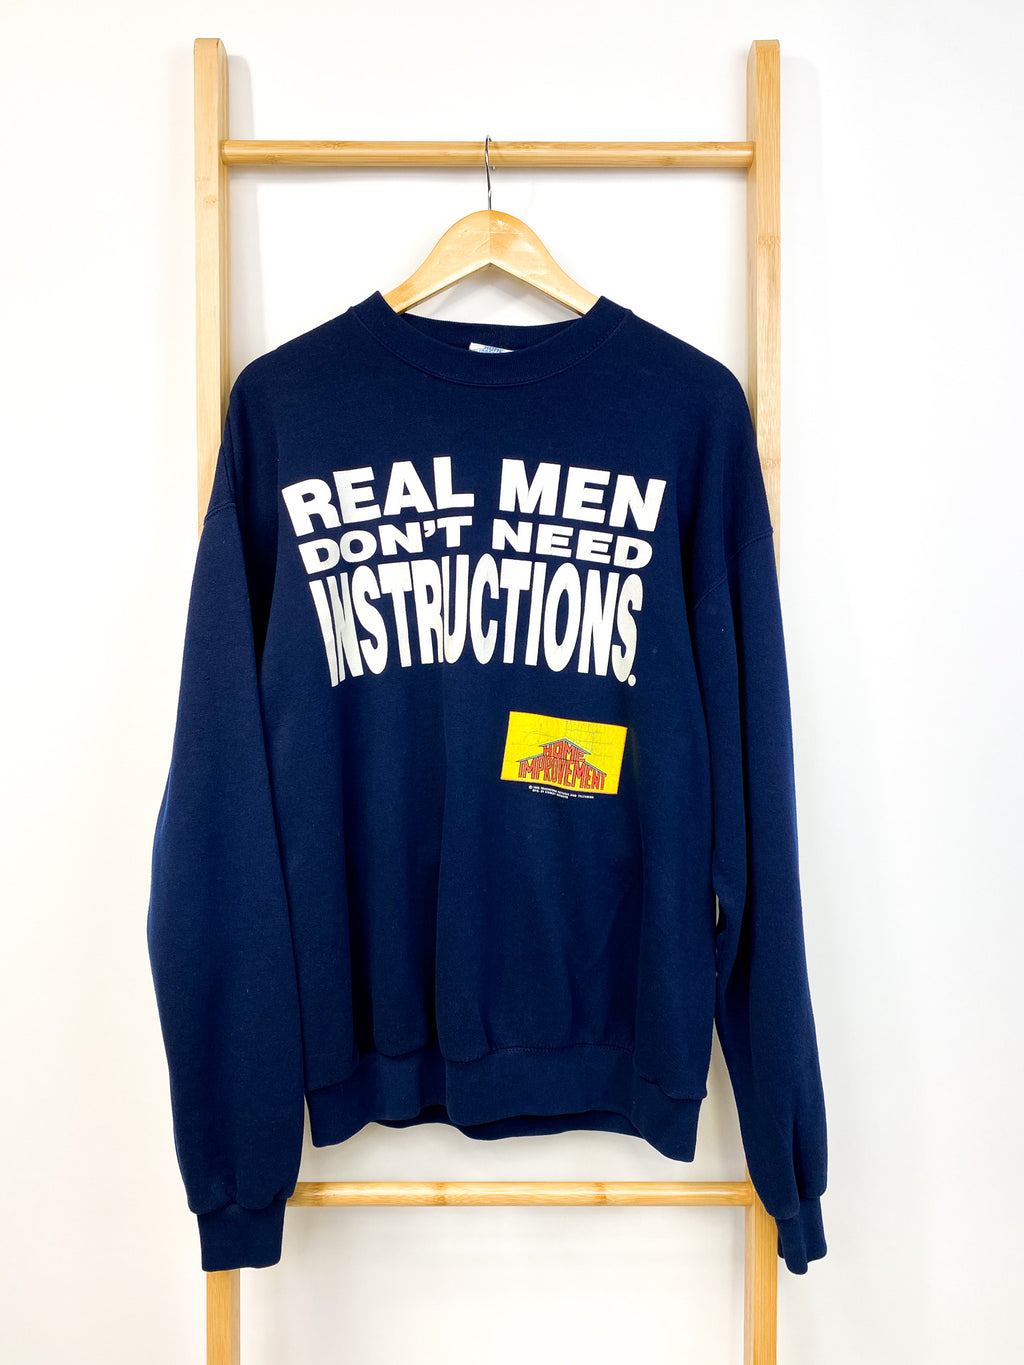 Vintage Home Improvement Sitcom Sweatshirt (L)